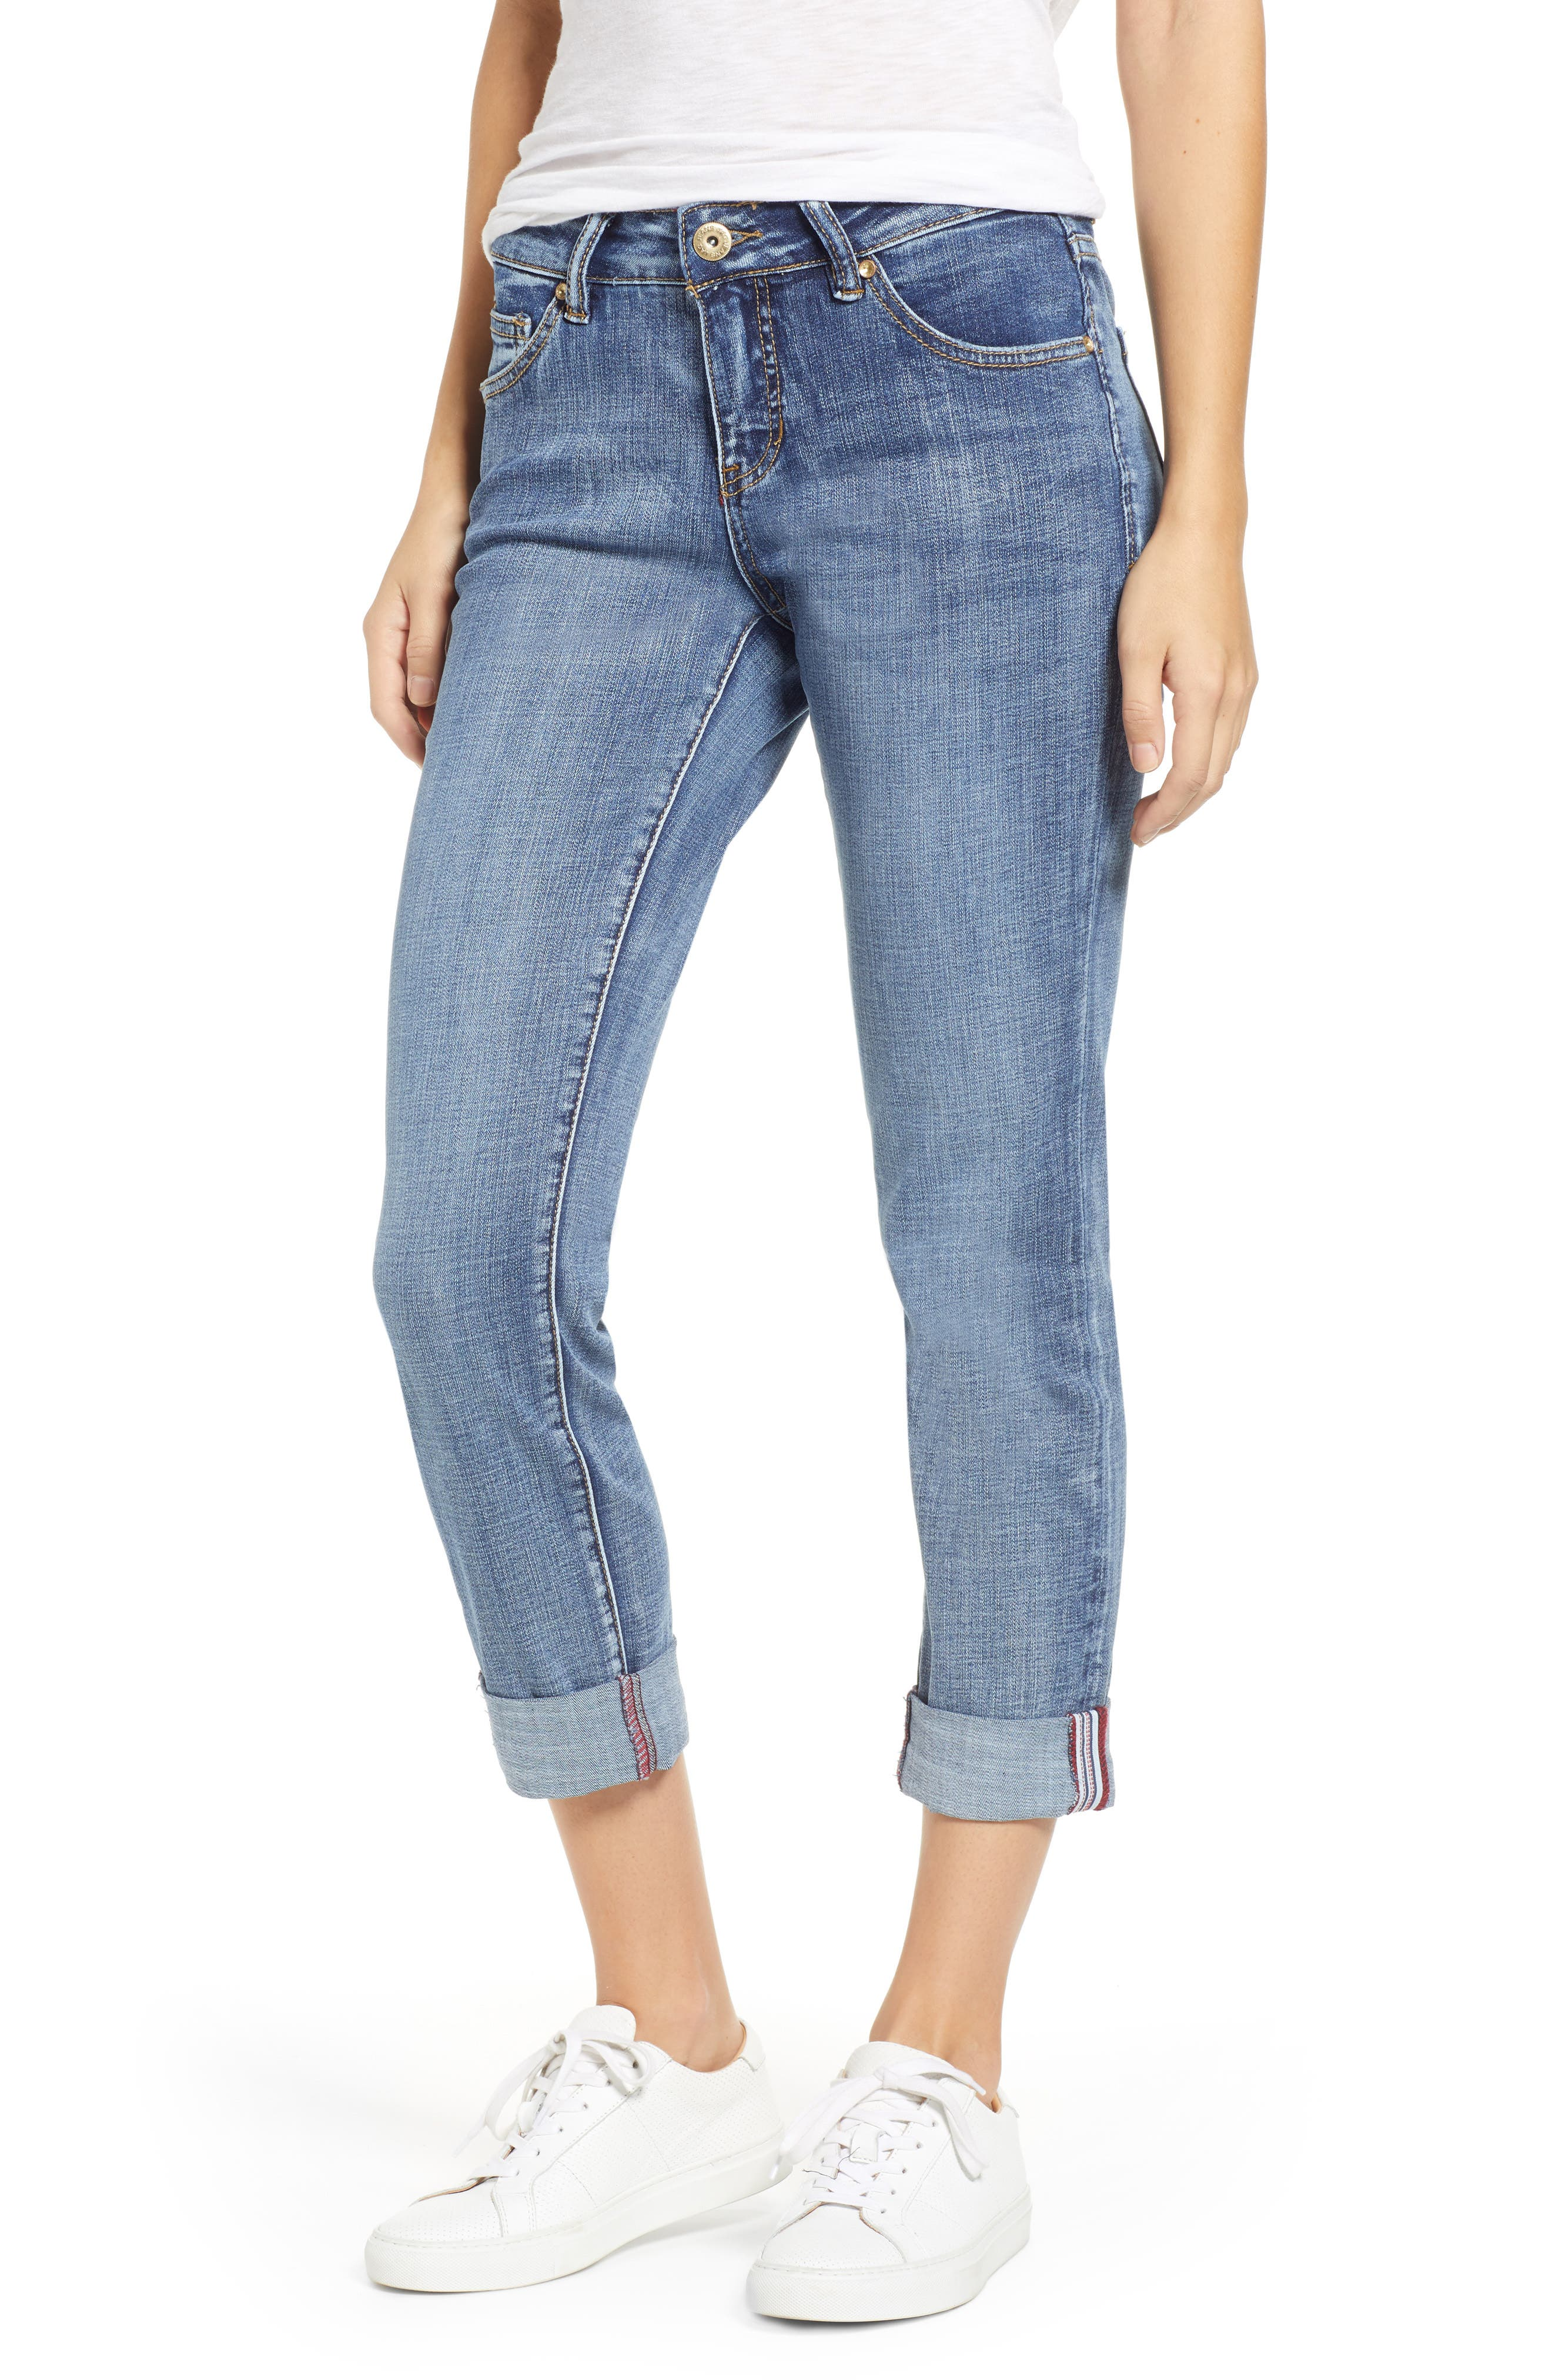 JAG JEANS Carter Girlfriend Jeans in Med Indigo